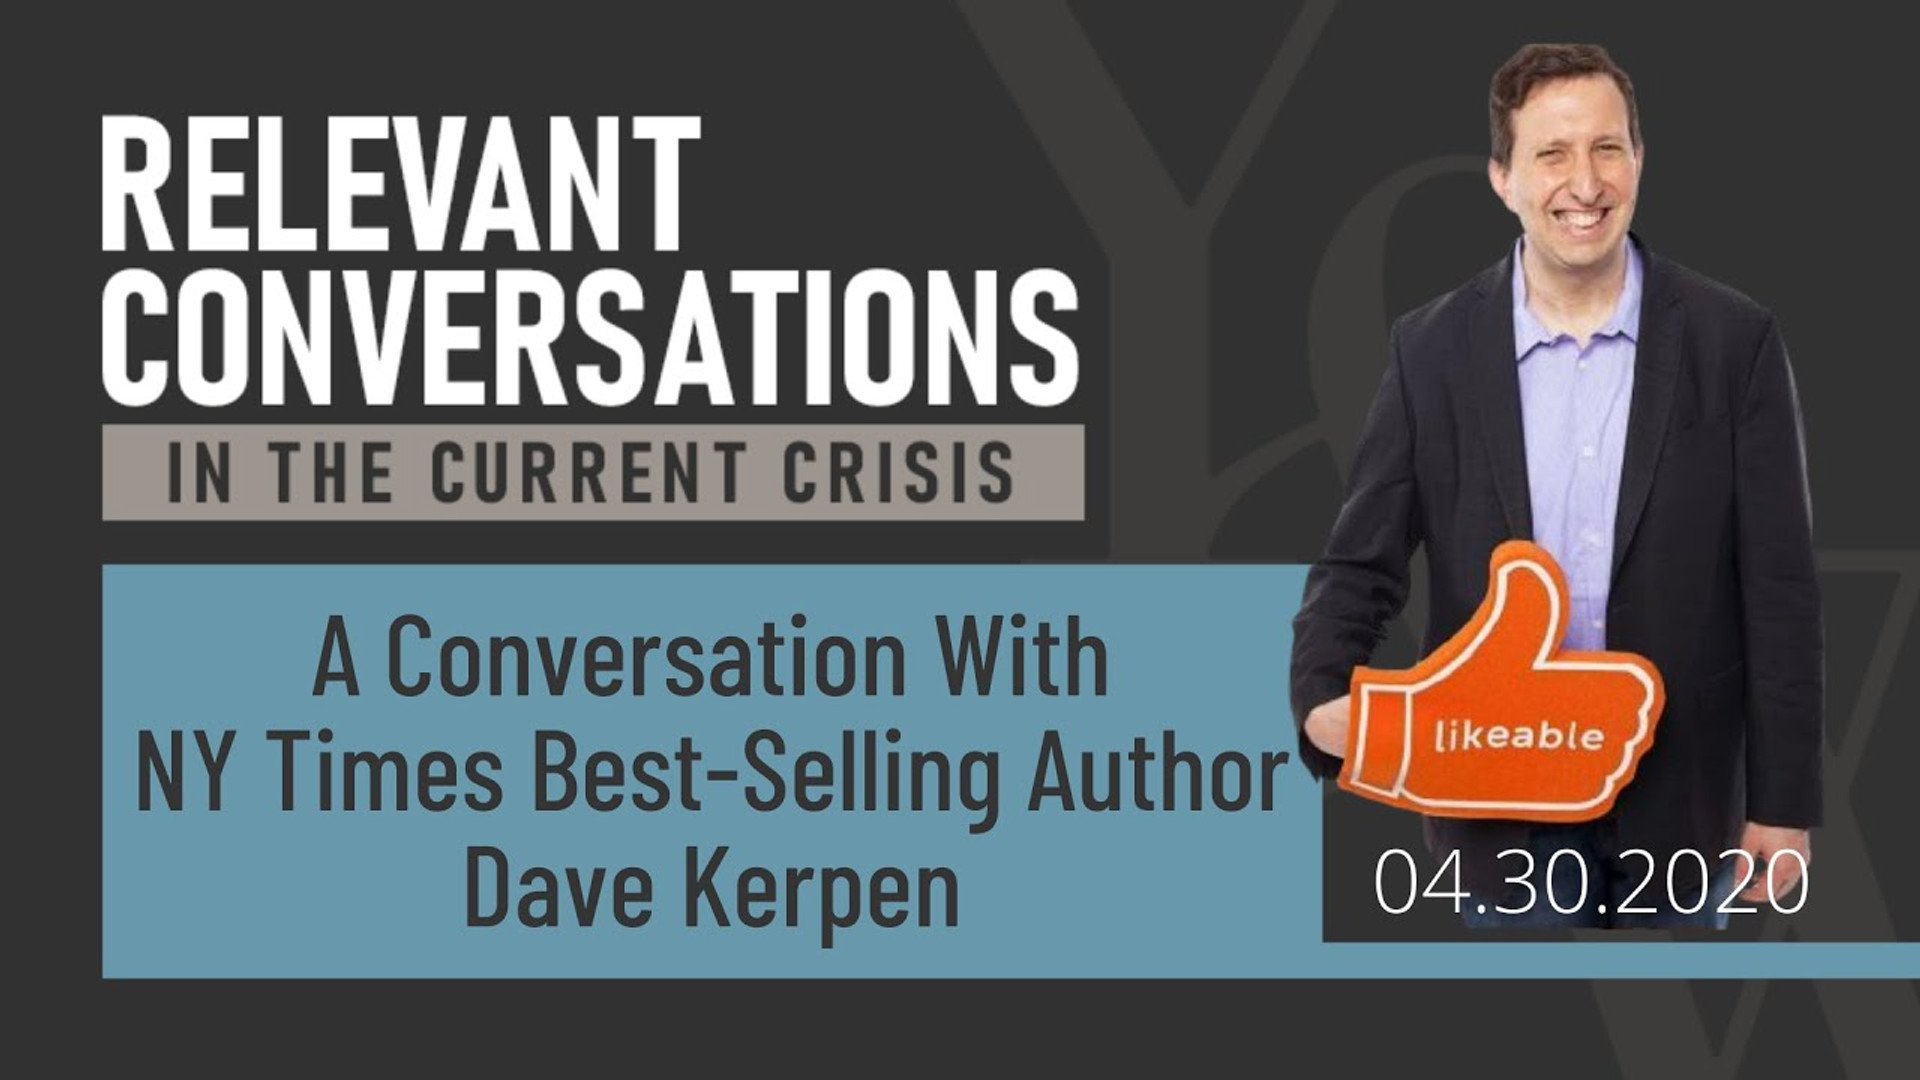 A Conversation with NY Times Best-Seller Dave Kerpen